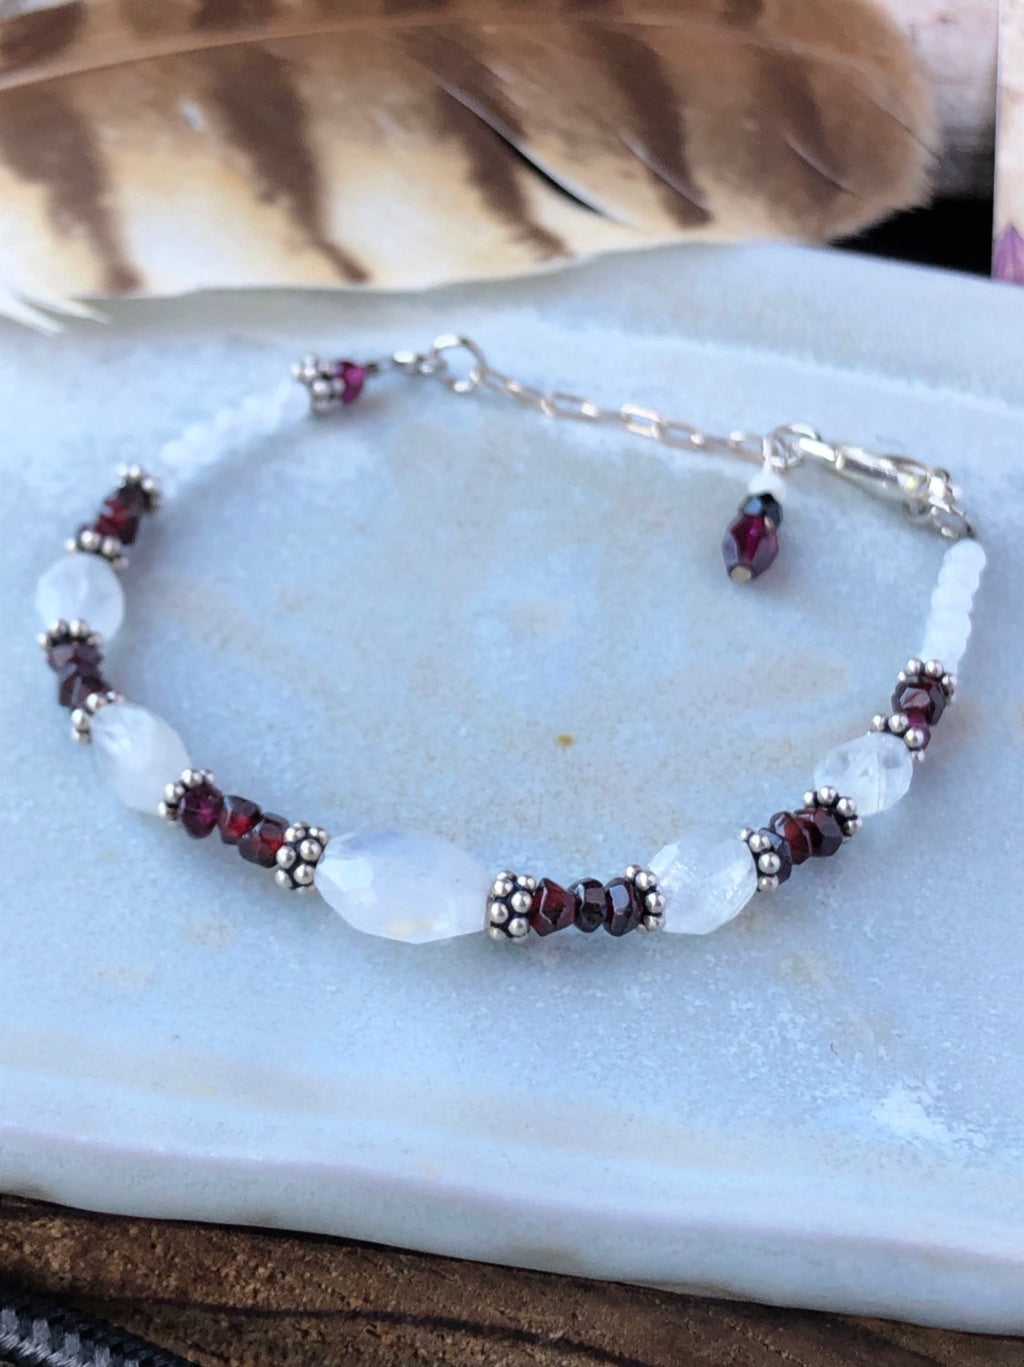 Garnet Moonstone Bracelet / Beaded Bracelet / Natural Gemstone Bracelet / Faceted Moonstone / Sterling Silver Adjustable Charm